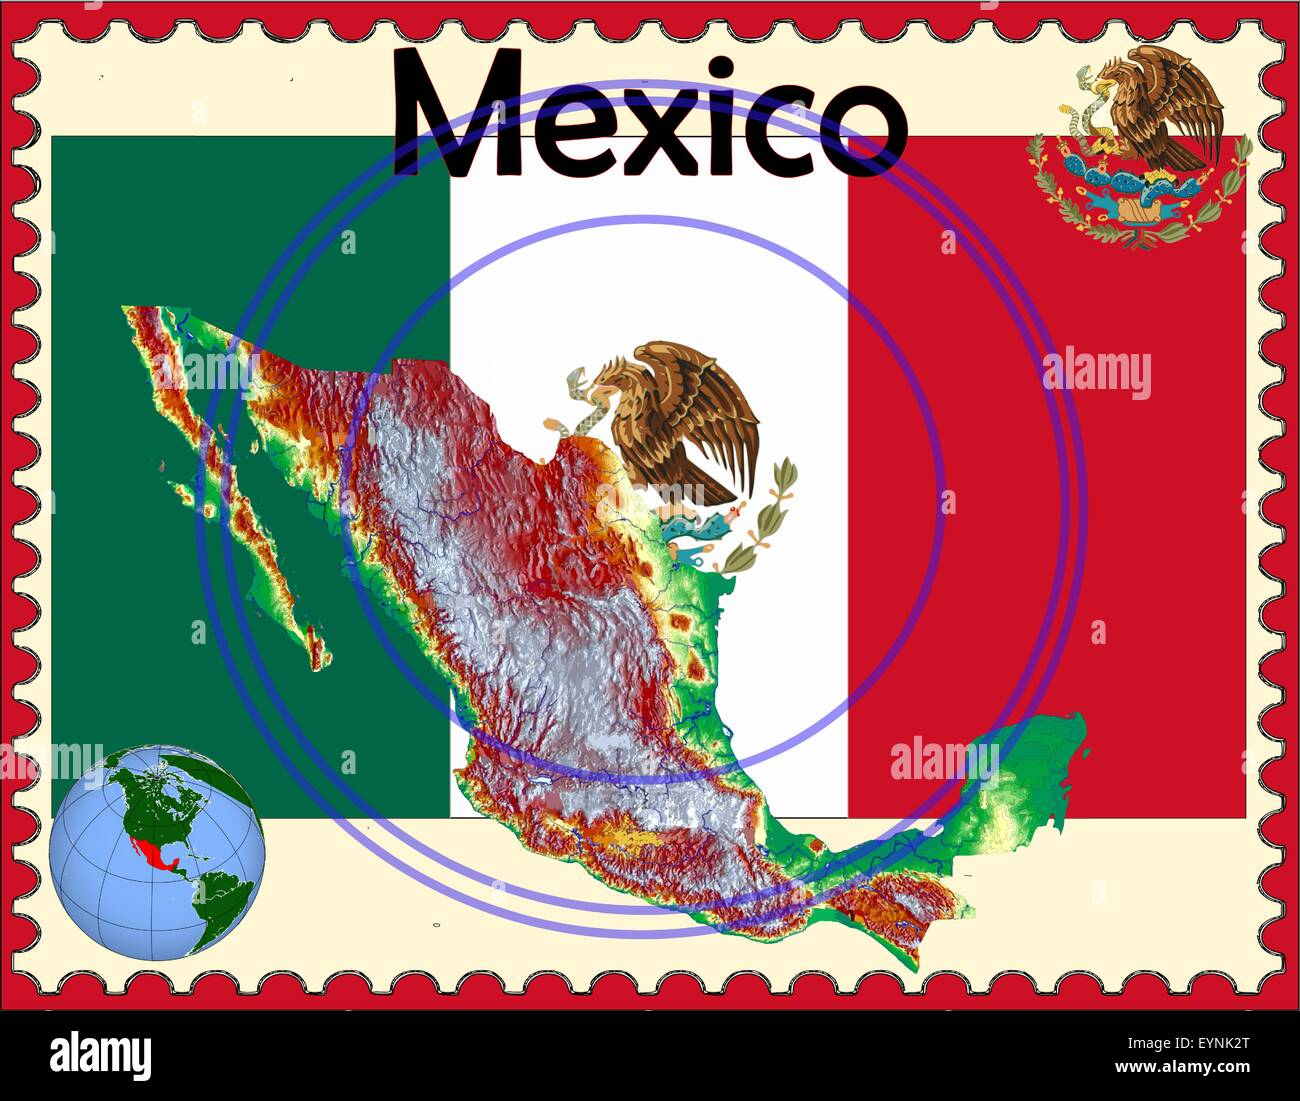 Mexico map flag coat stamp - Stock Image